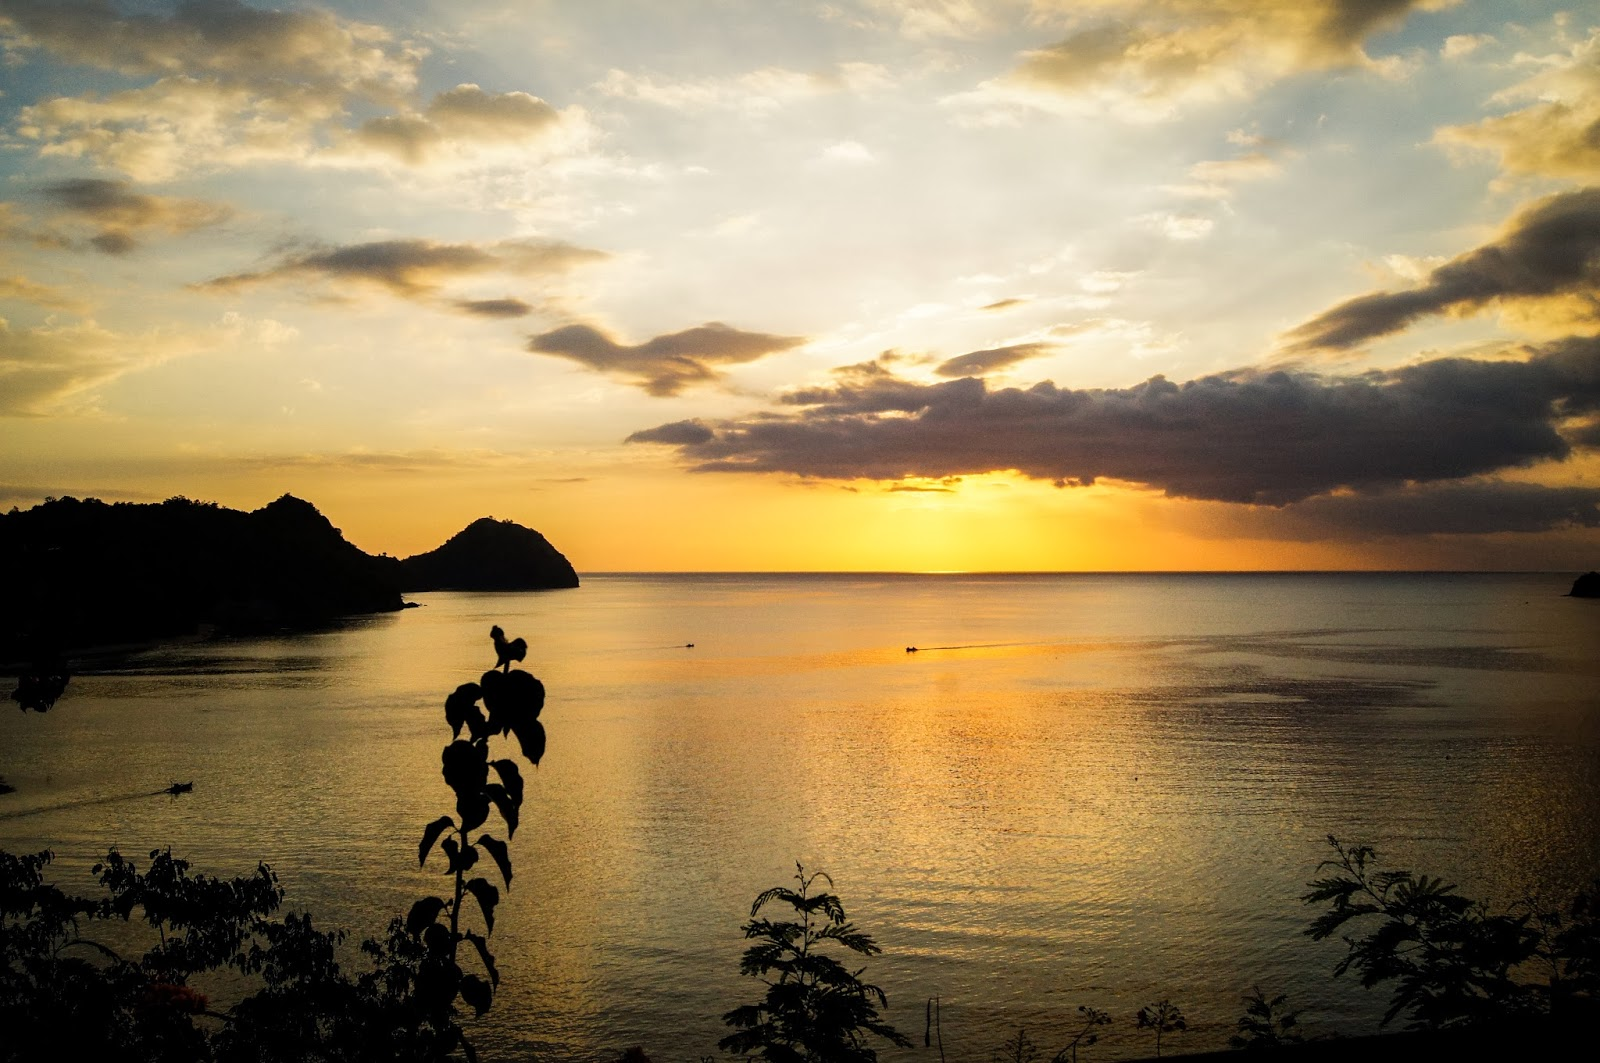 sunset en labuanbajo